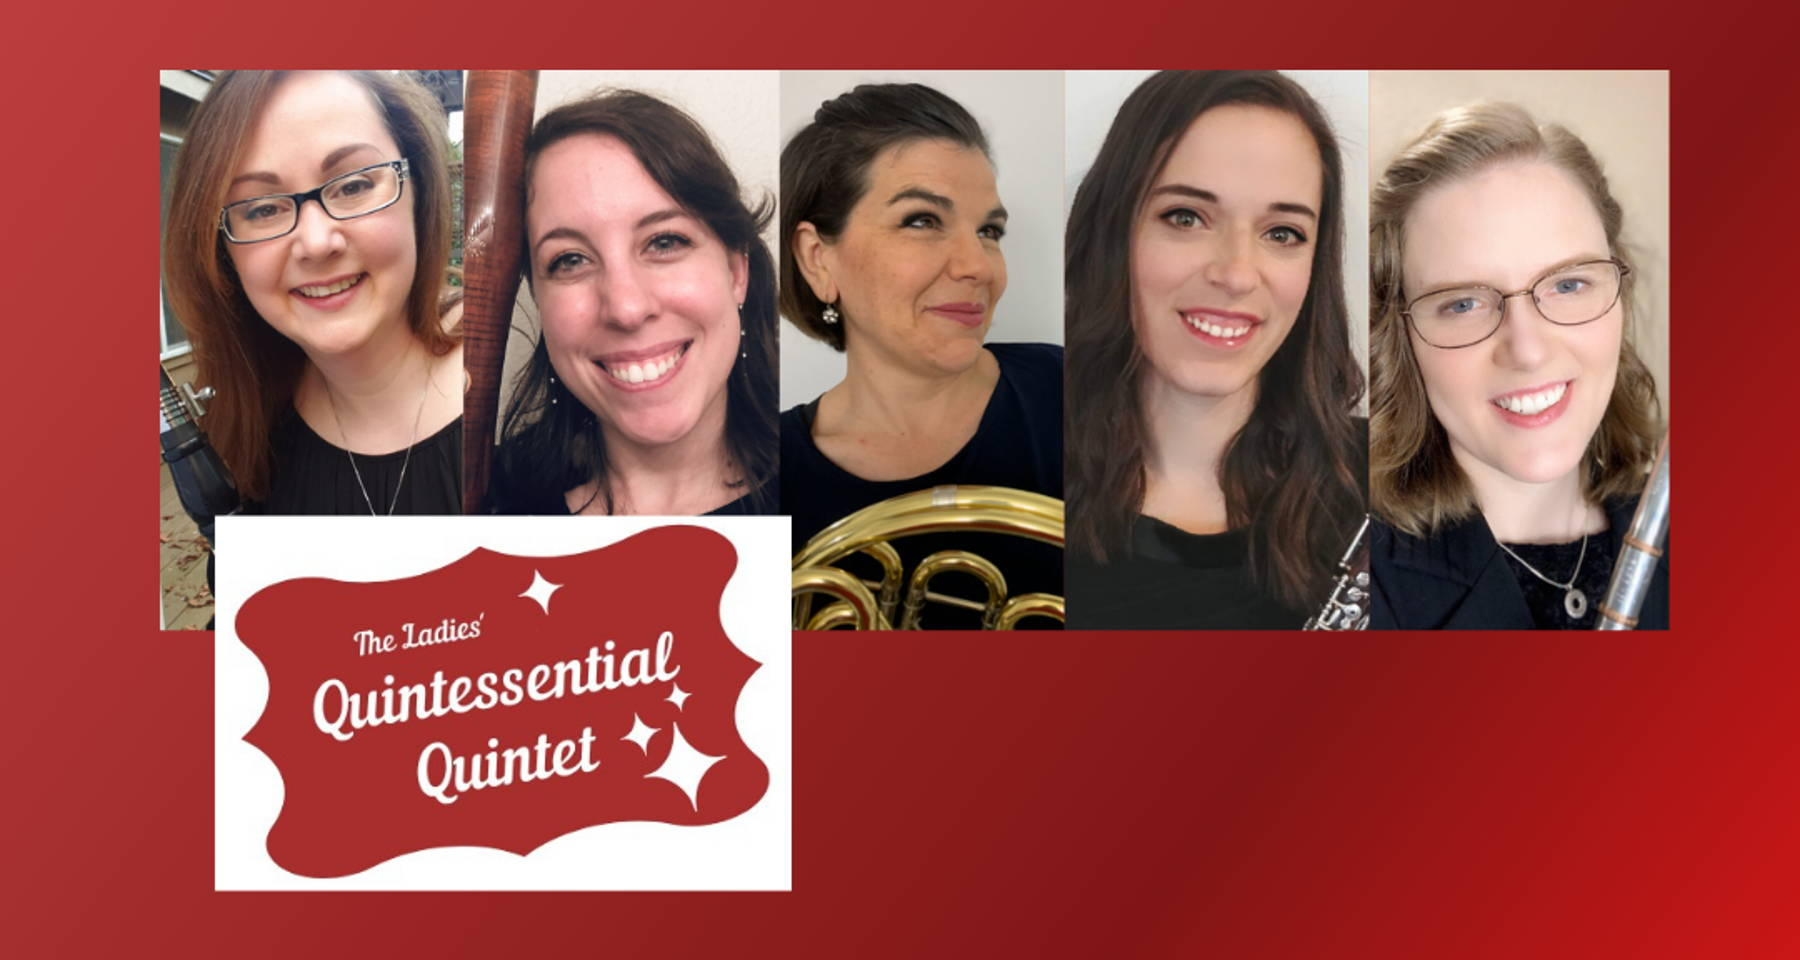 Ladies' Quintessential Quintet presents: Chamber Music Large and Small - works from solo to double quintet